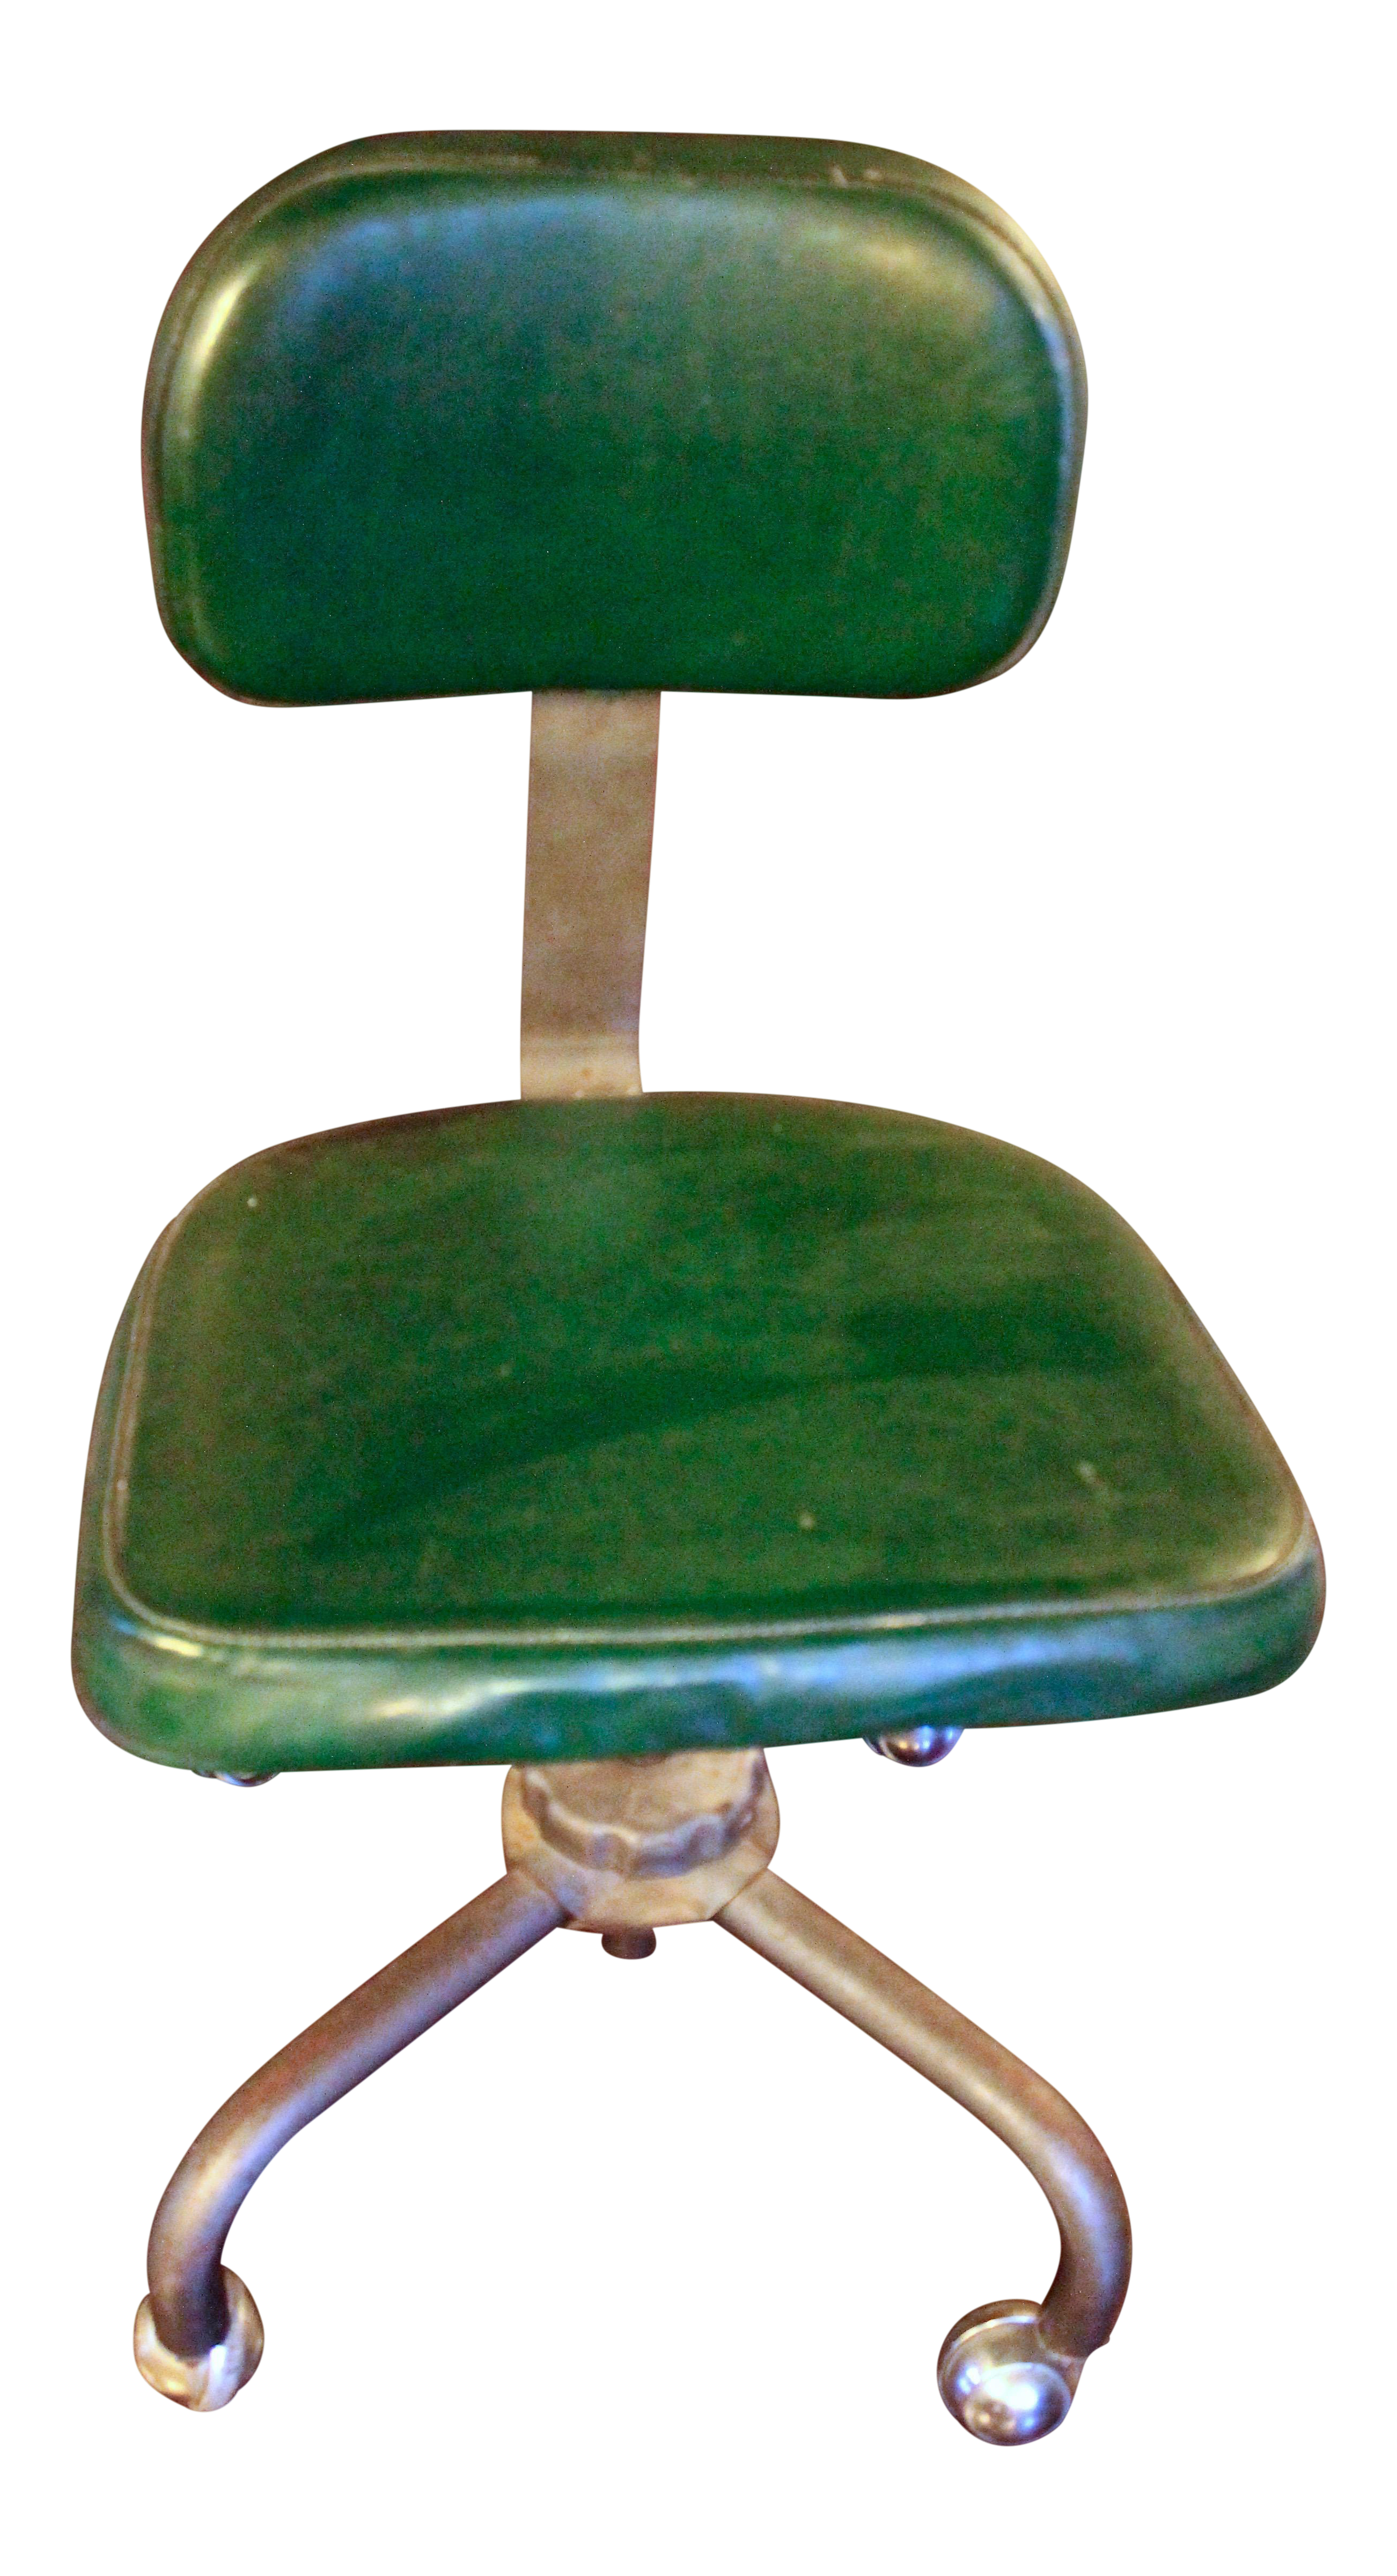 1970s Vintage Mid Century Modern Industrial Green Leather Drafting Chair    Image 1 Of 9